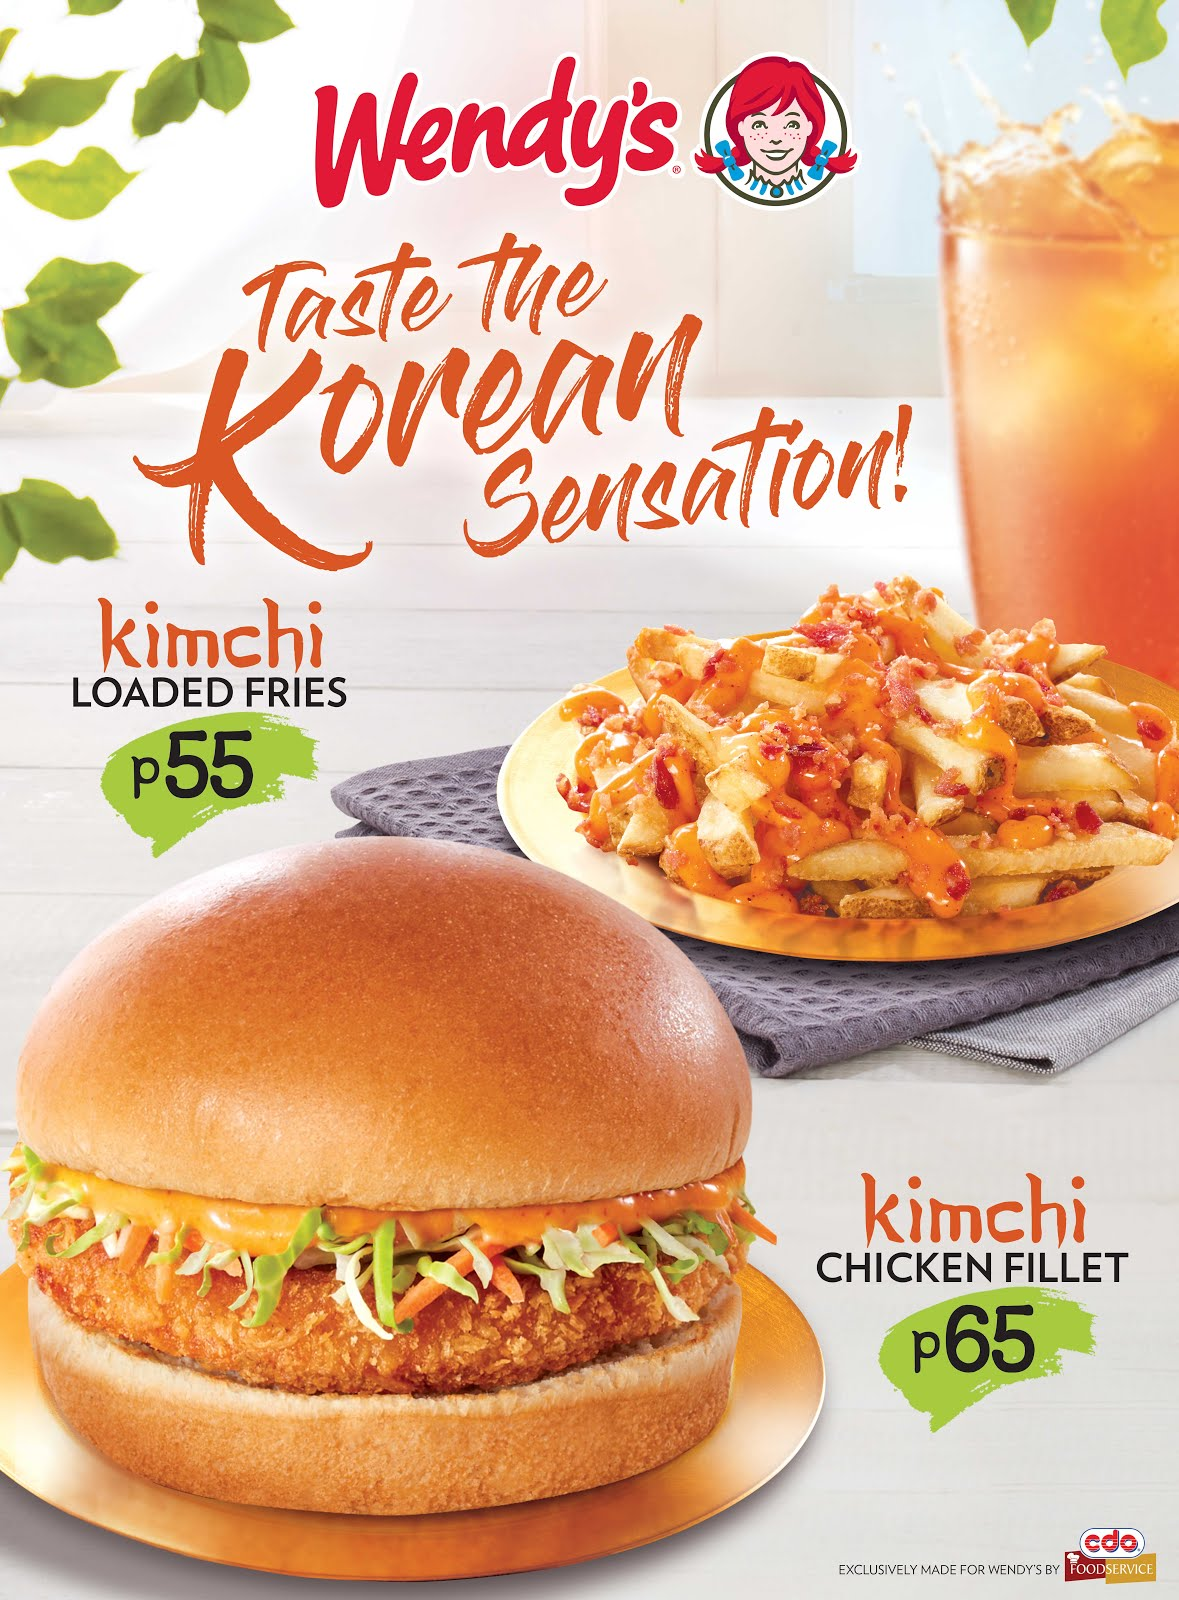 Taste the Korean Sensation at Wendy's